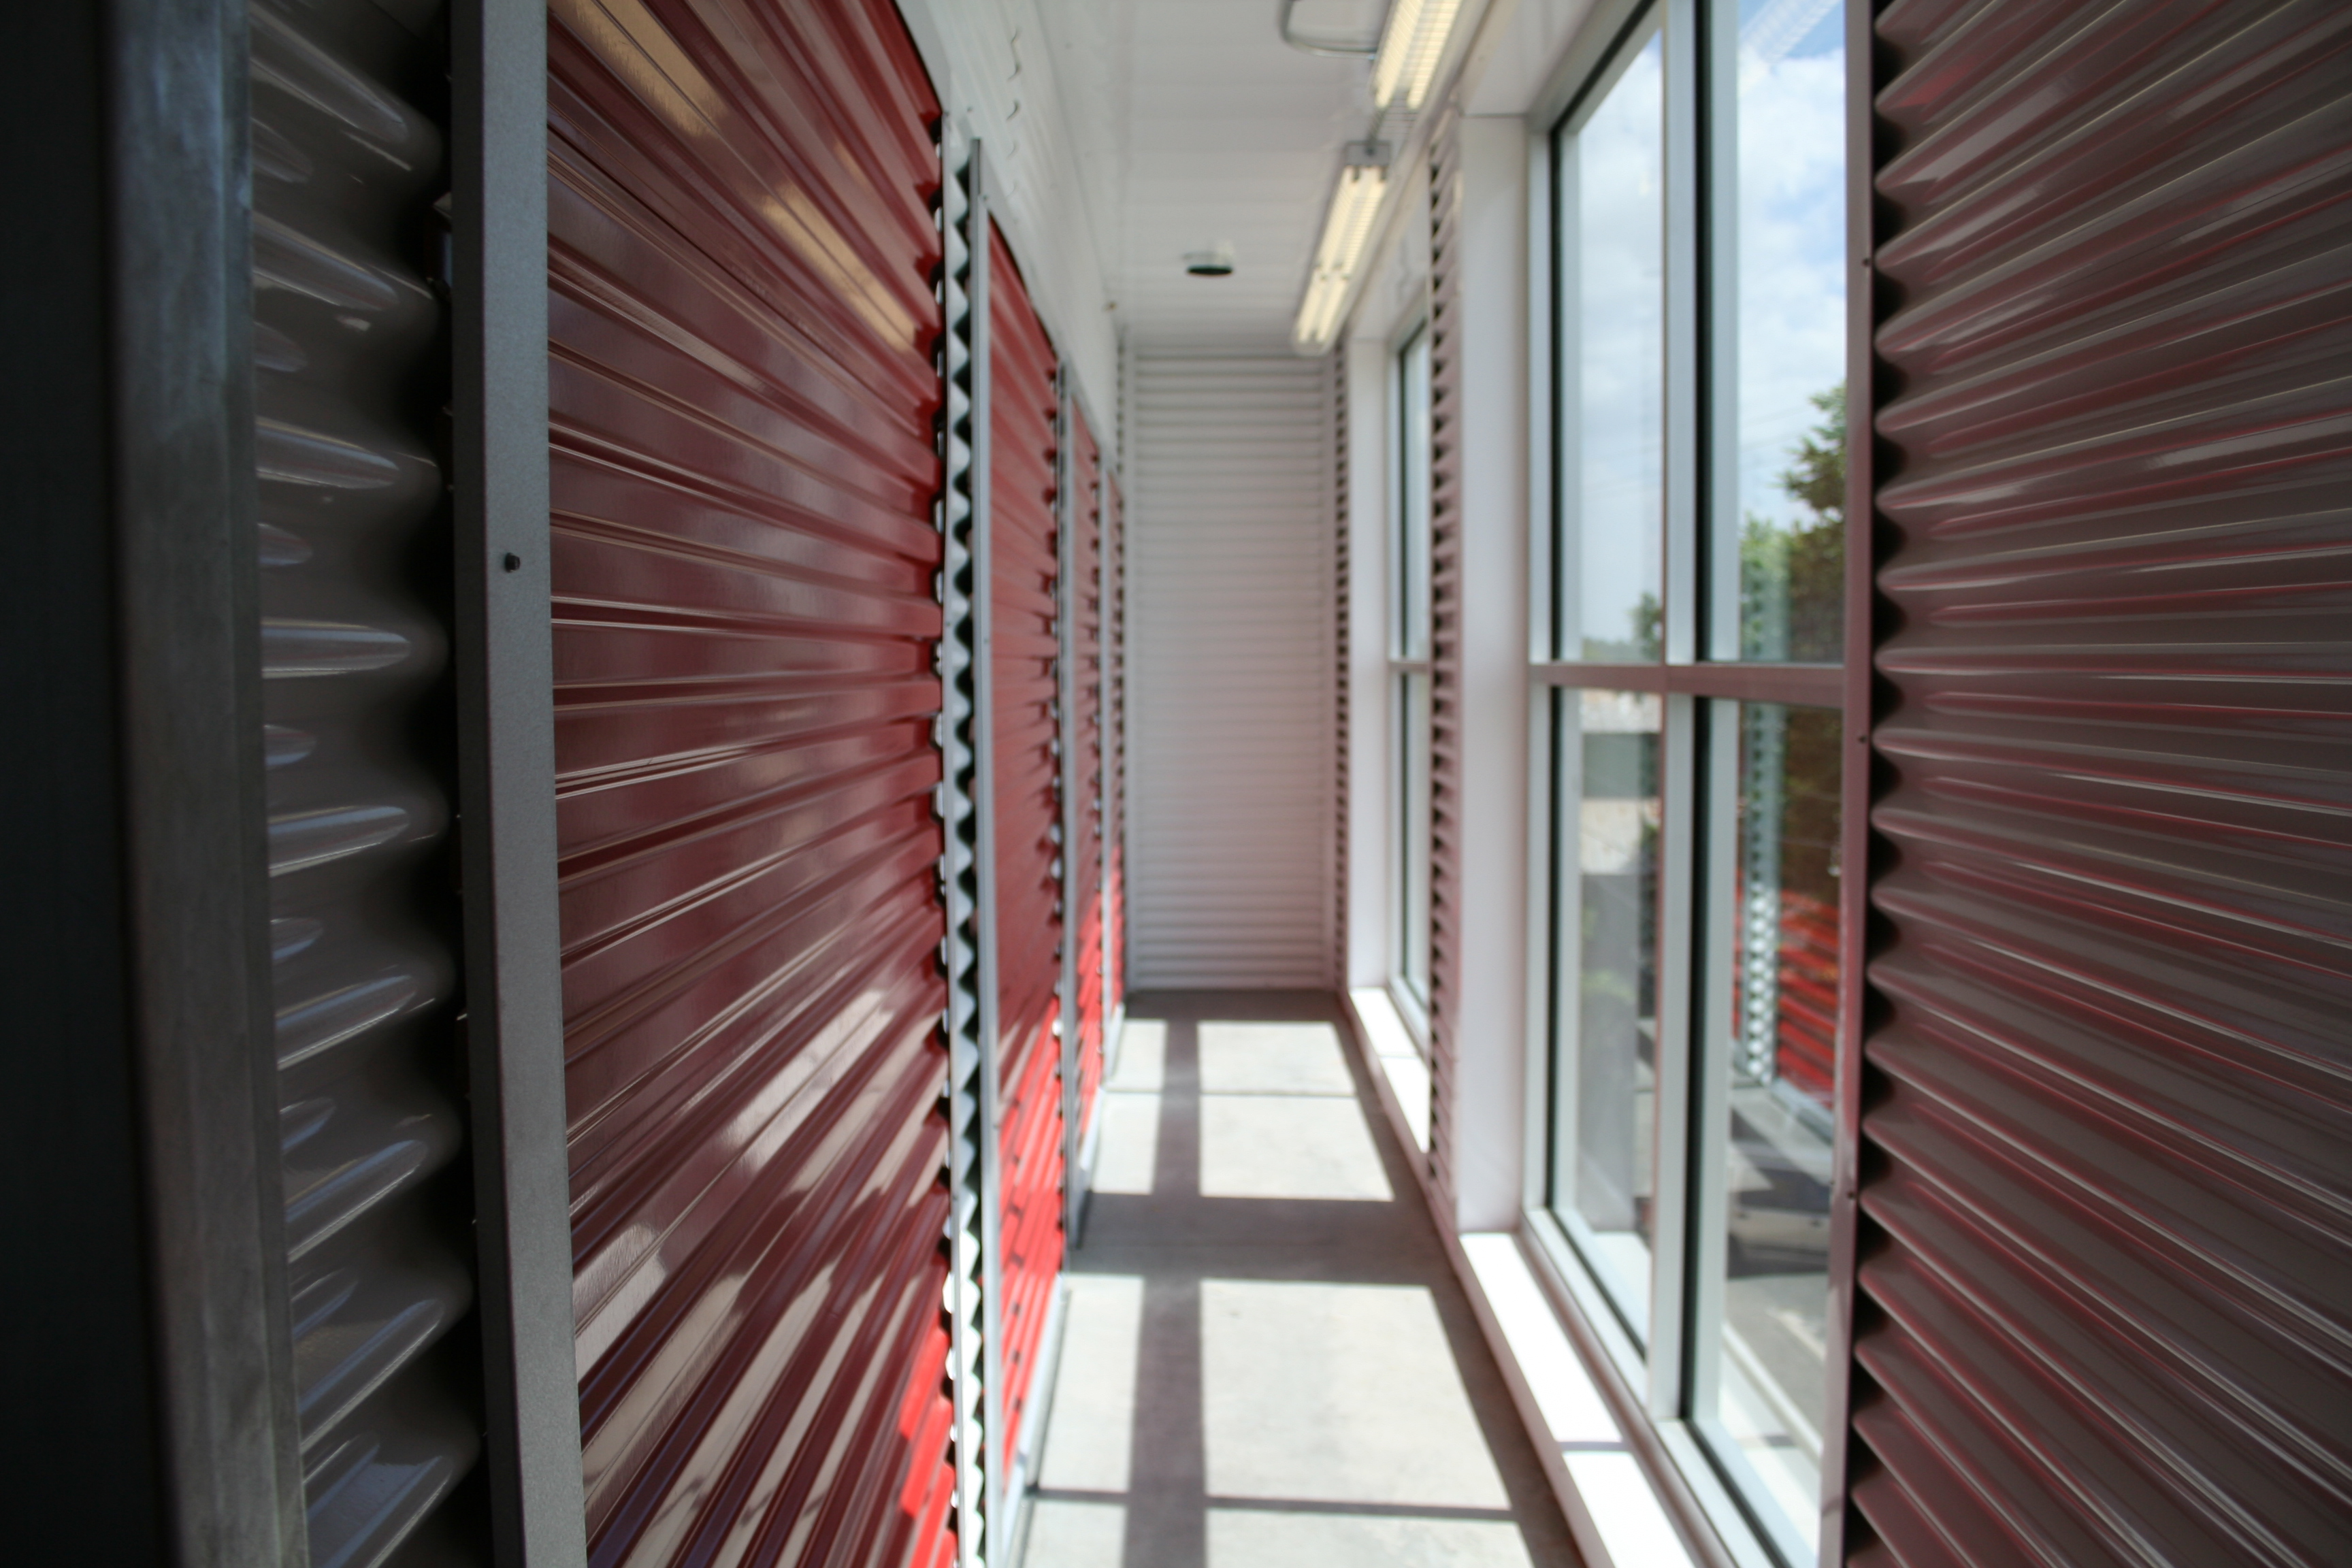 Metal Panels For Walls exposed-fastener vs. concealed-fastener wall panels: which is best?